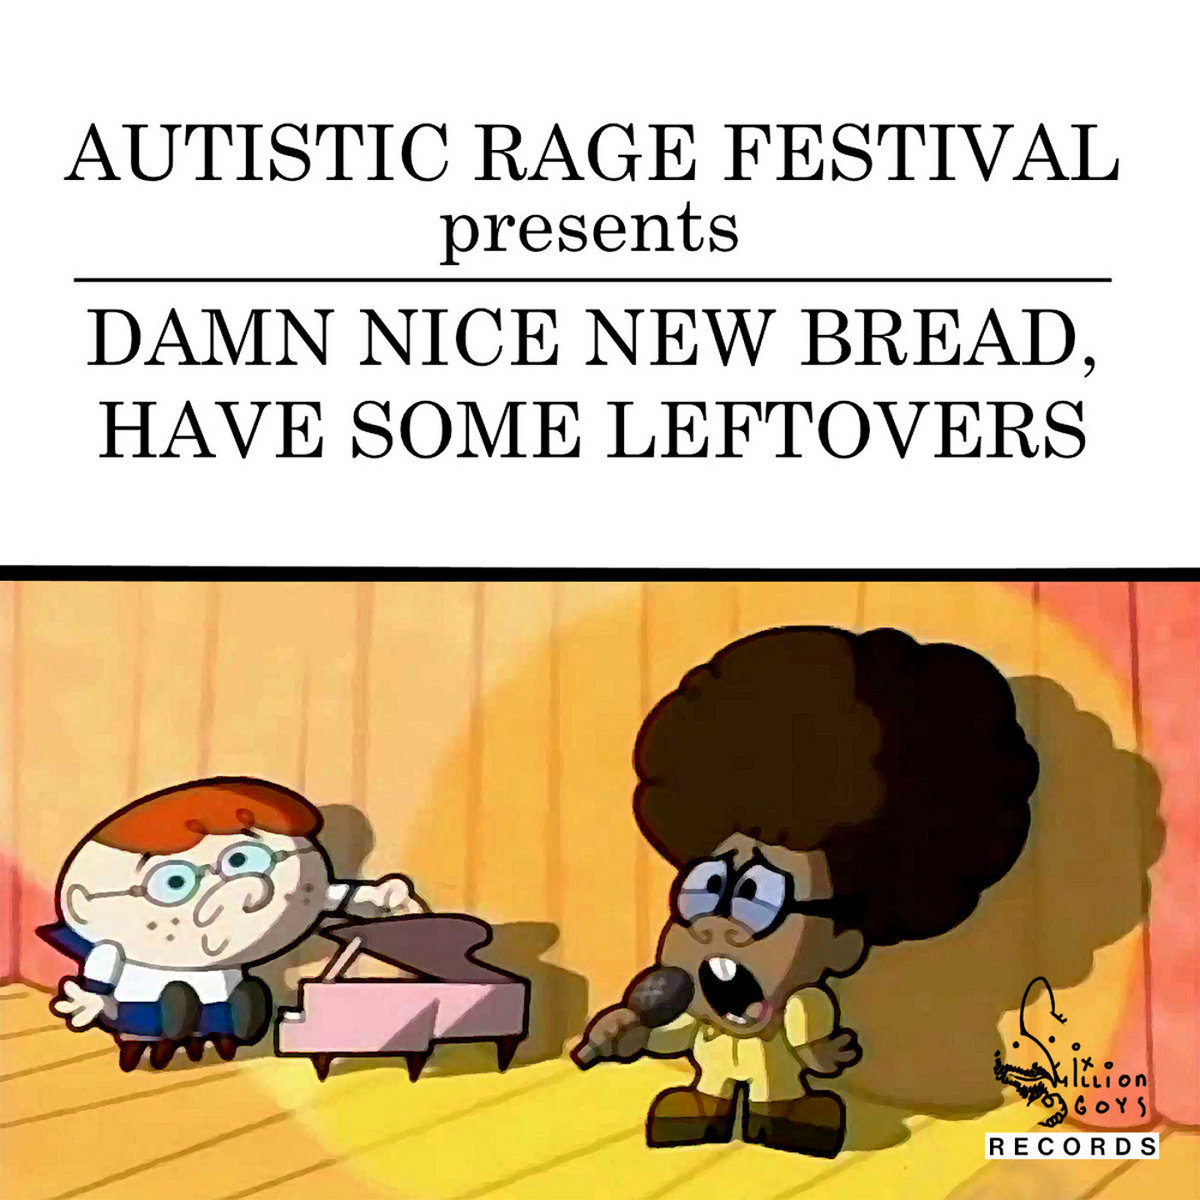 314Chan damn nice bread, have some leftovers | autistic rage festival 2